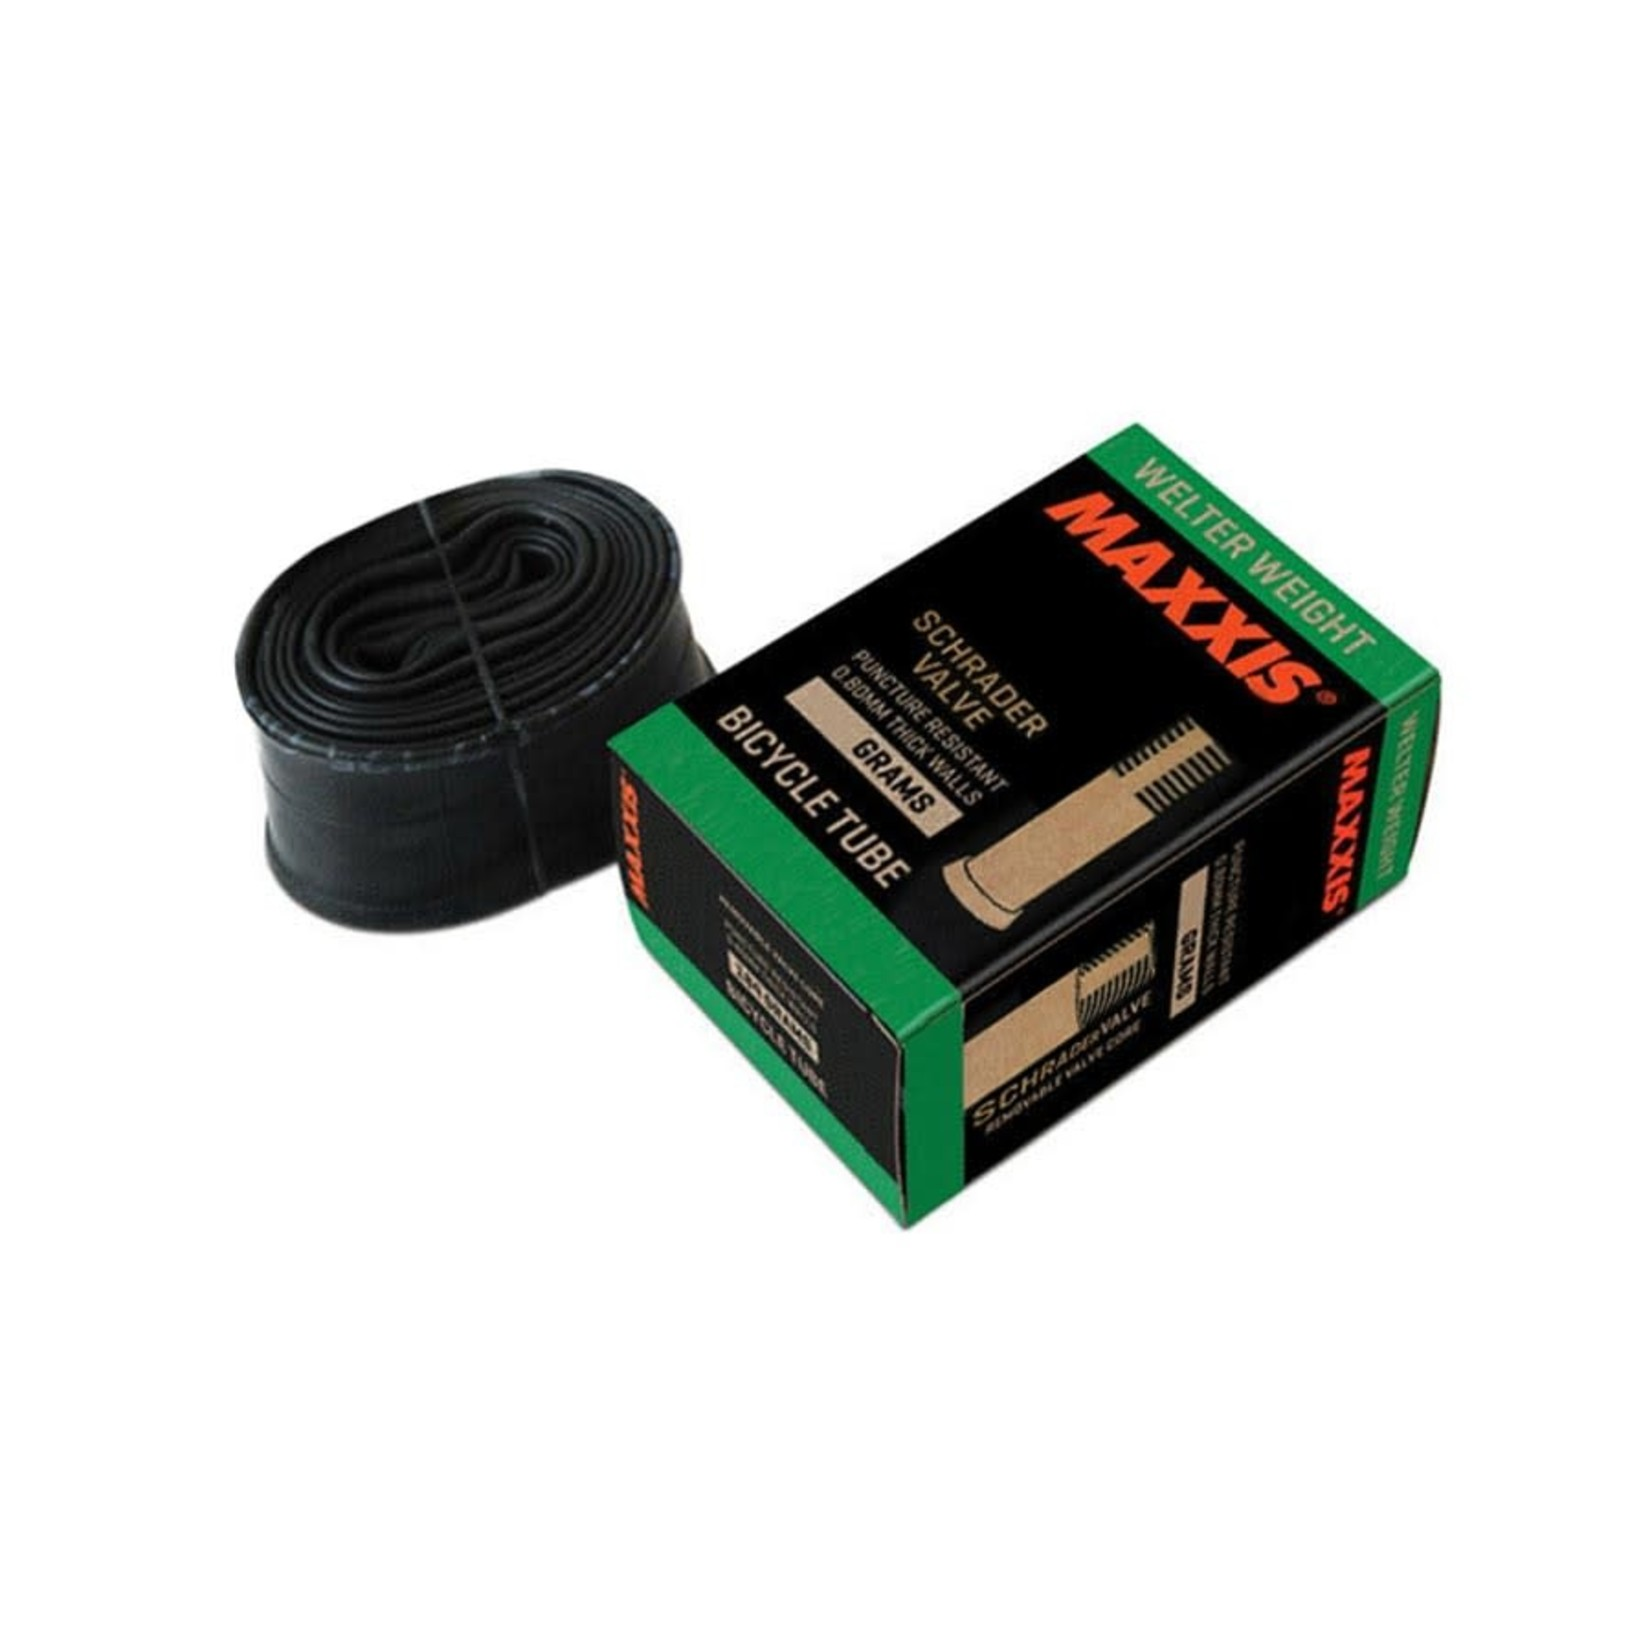 Maxxis Maxxis, Welter Weight, Tube, Schrader, Length: 48mm, 26'', 1.50-2.50